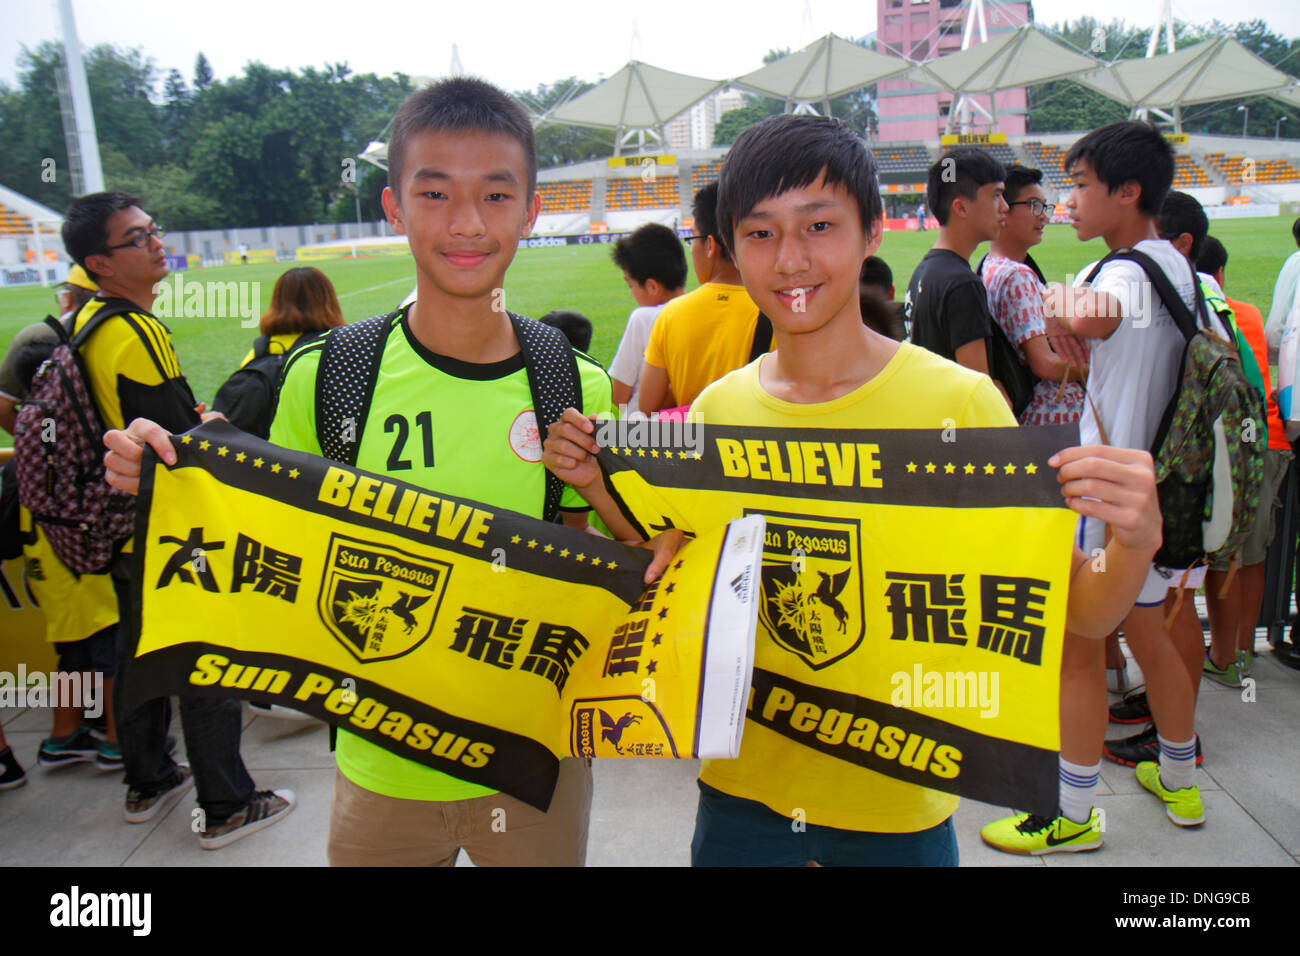 Hong Kong China Kowloon Prince Edward Mong Kok Stadium Sun Pegasus football club soccer fan banner Cantonese Chinese characters - Stock Image